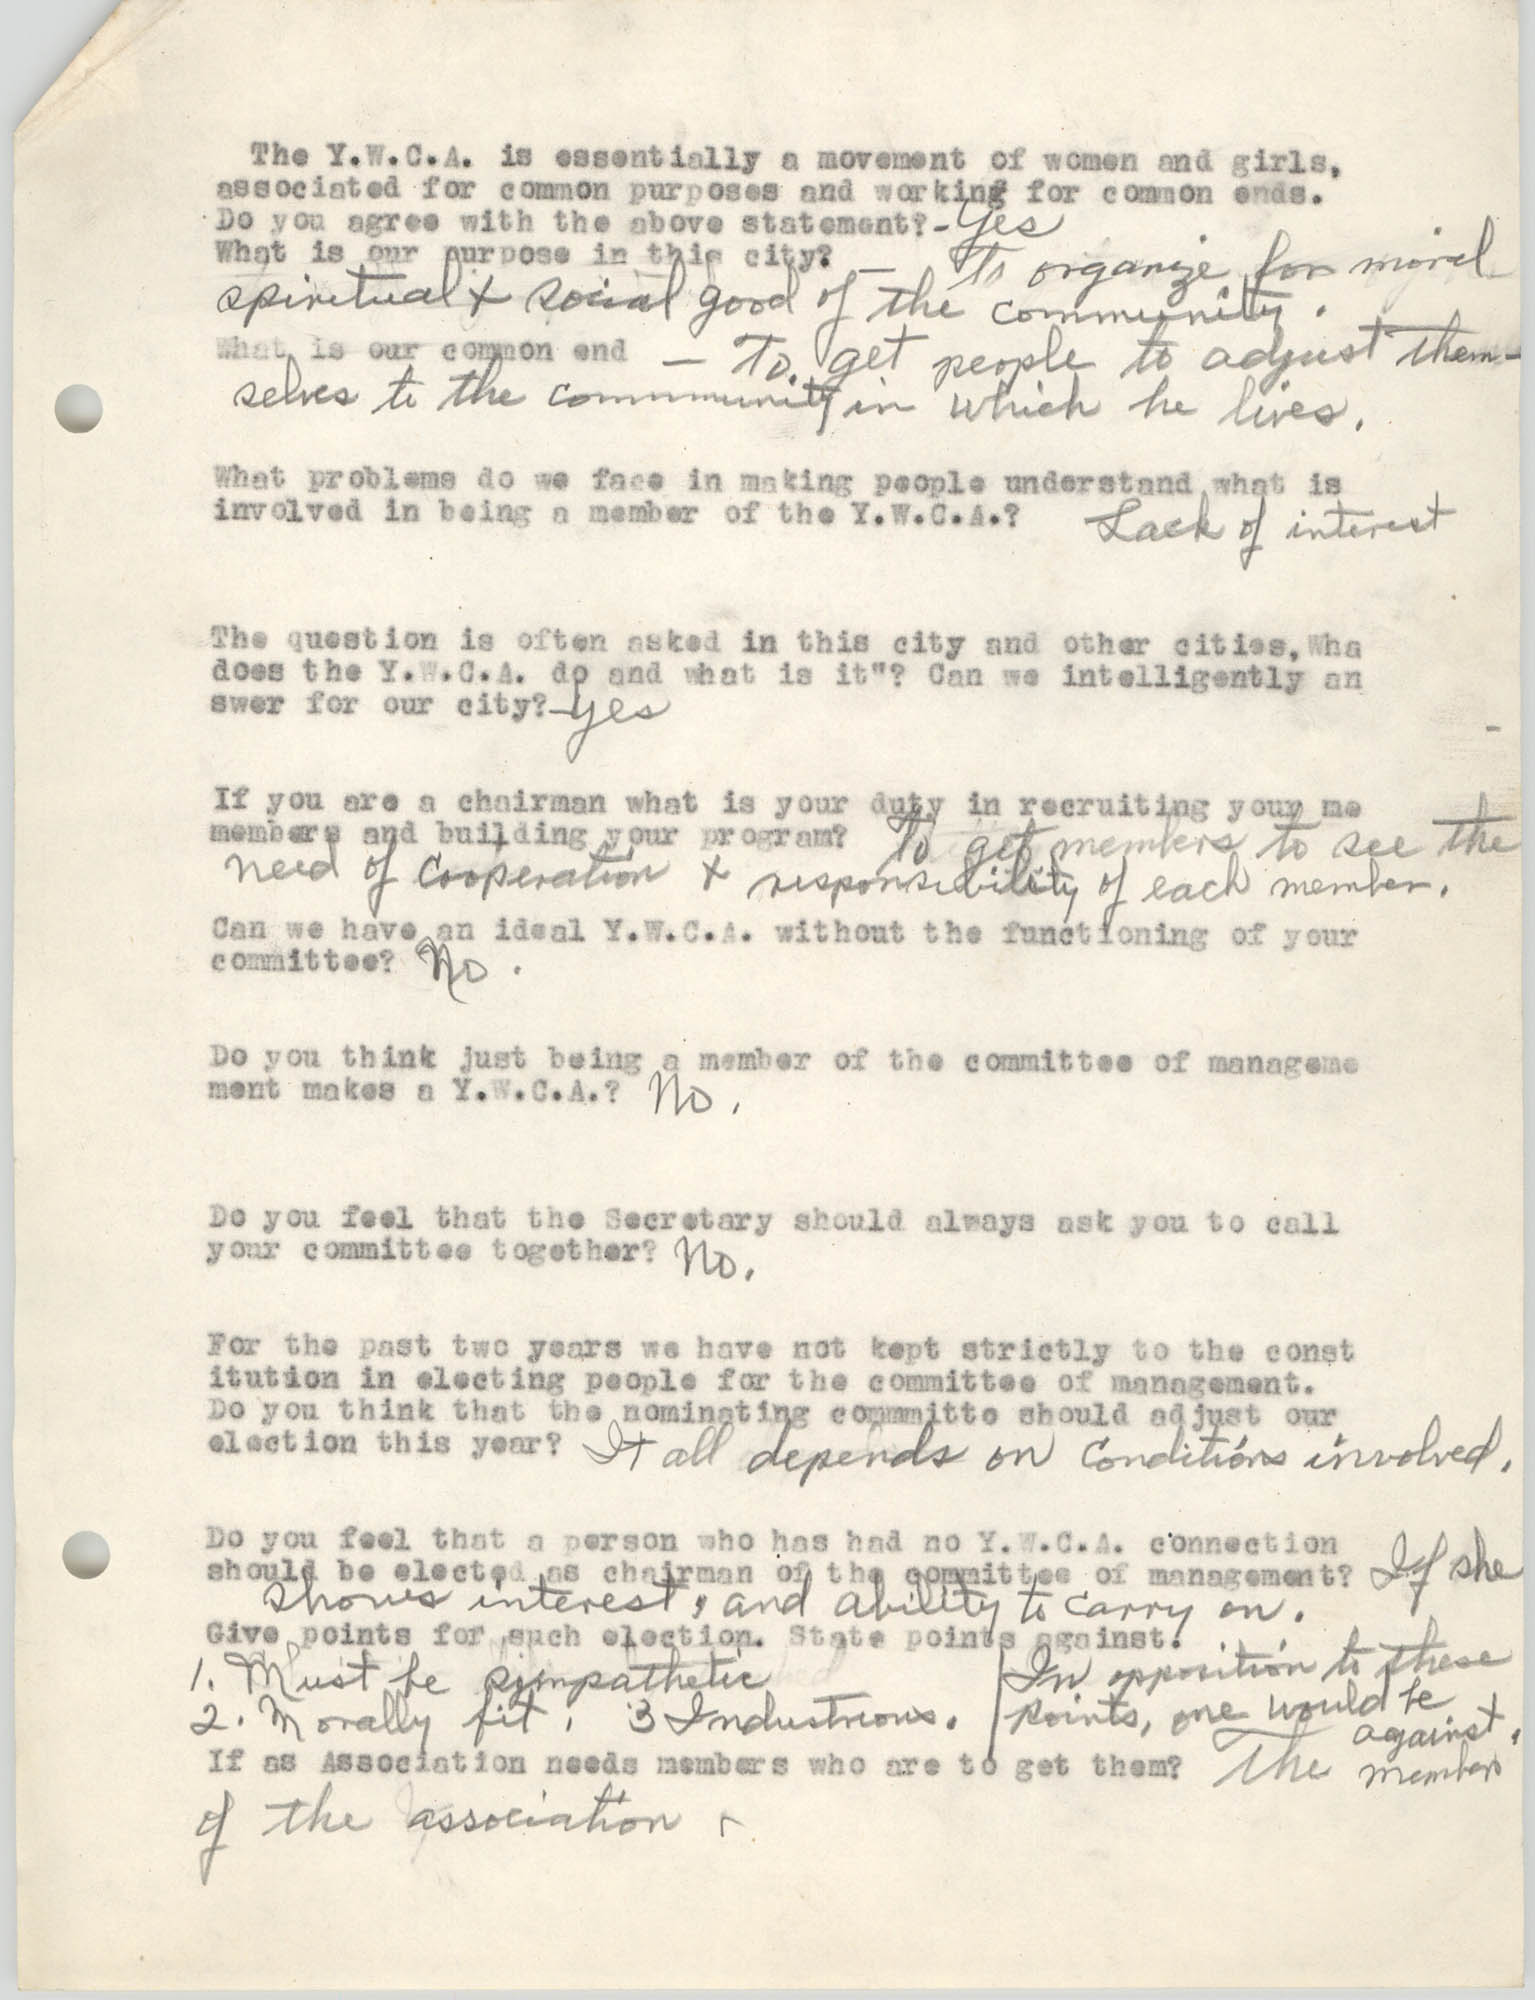 Coming Street Y.W.C.A., Completed Questionnaire Number 2, Page 1